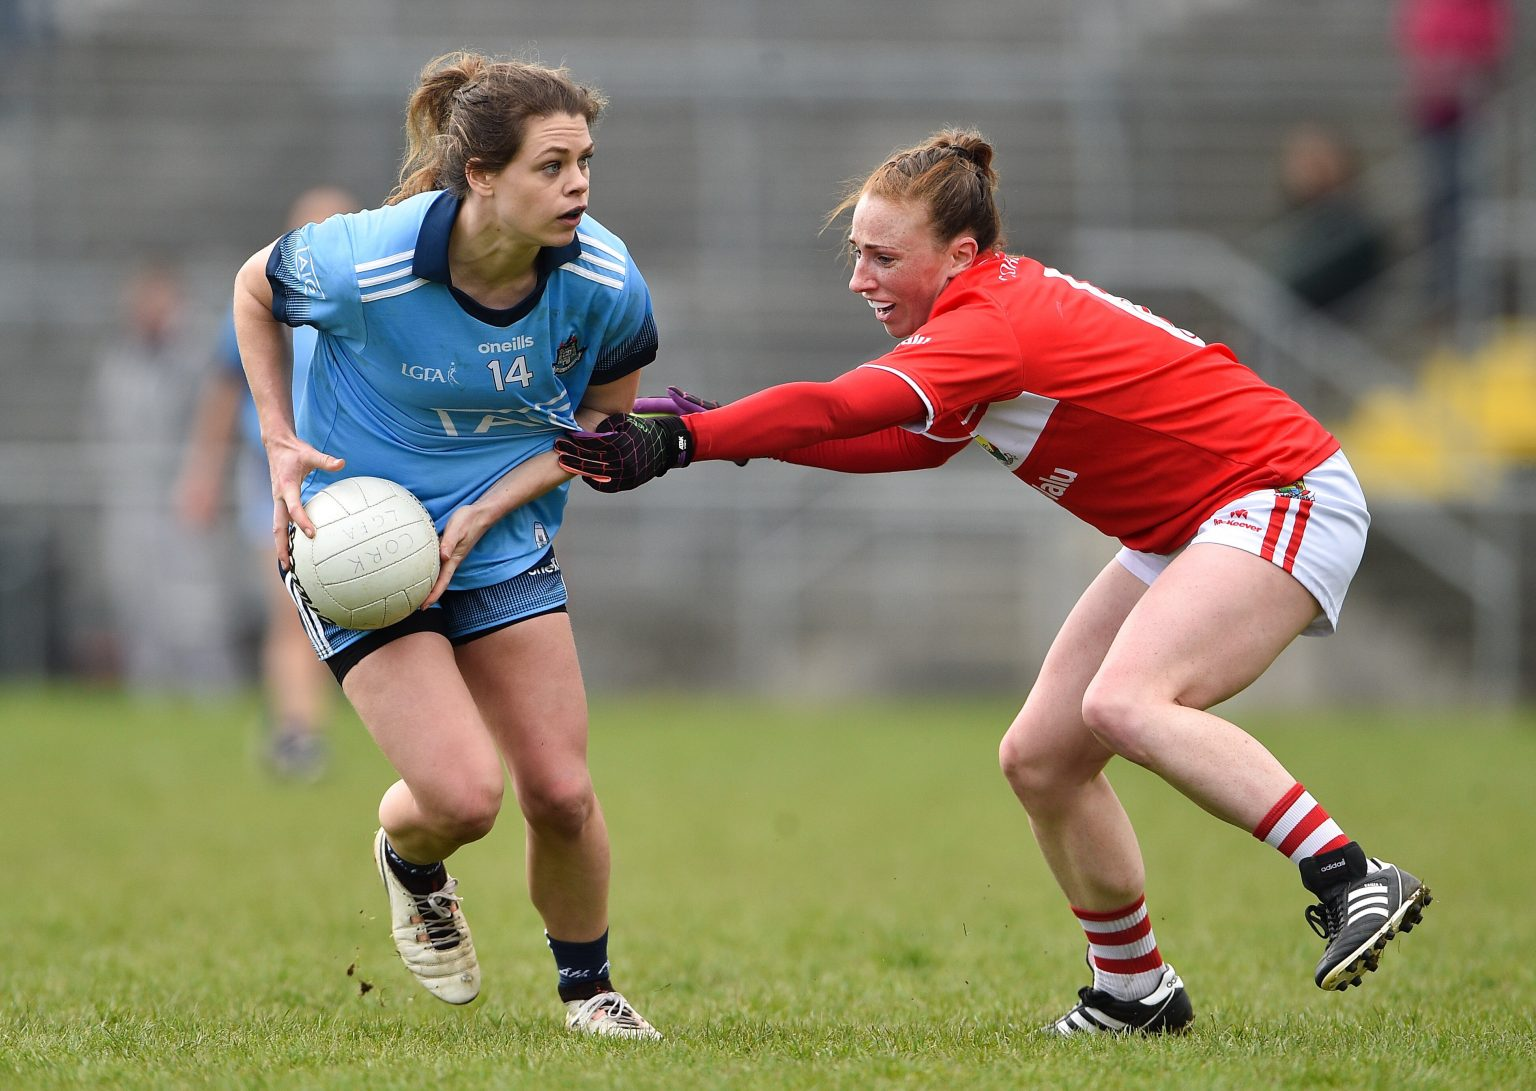 Dublin Ladies Footballer in a sky blue jersey and navy shorts evades the tackle of a Cork player in a red jersey and white shorts with red stripes down the side, Cork won the game but both sides meet again in two weeks in the Lidl NFL semi final